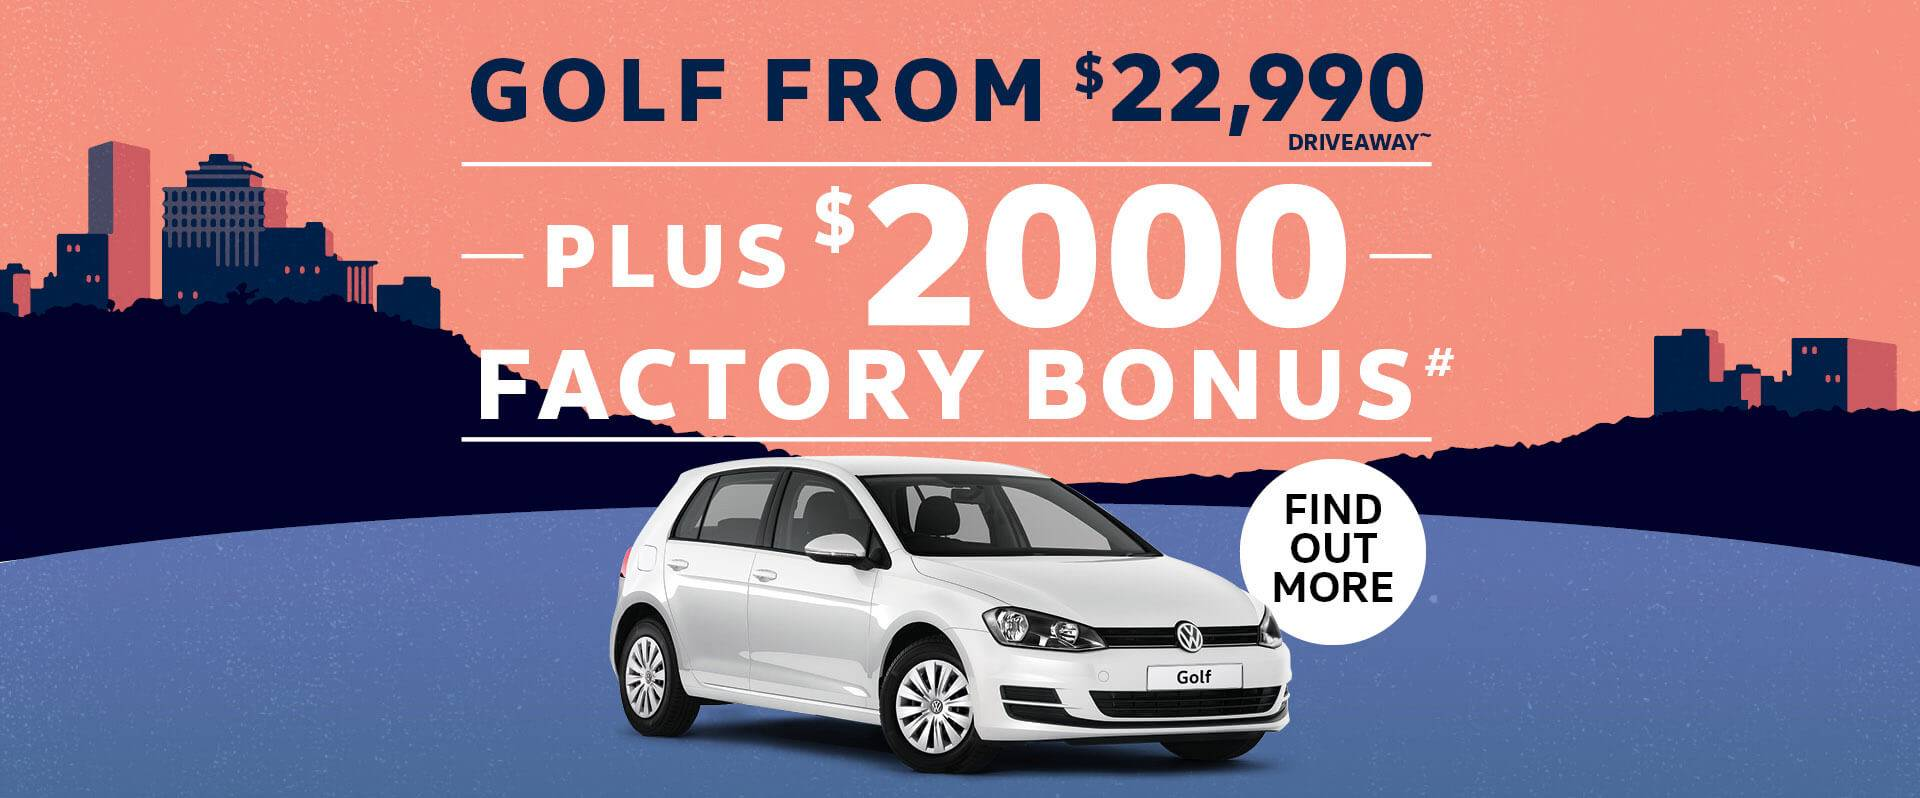 Golf from $22,990